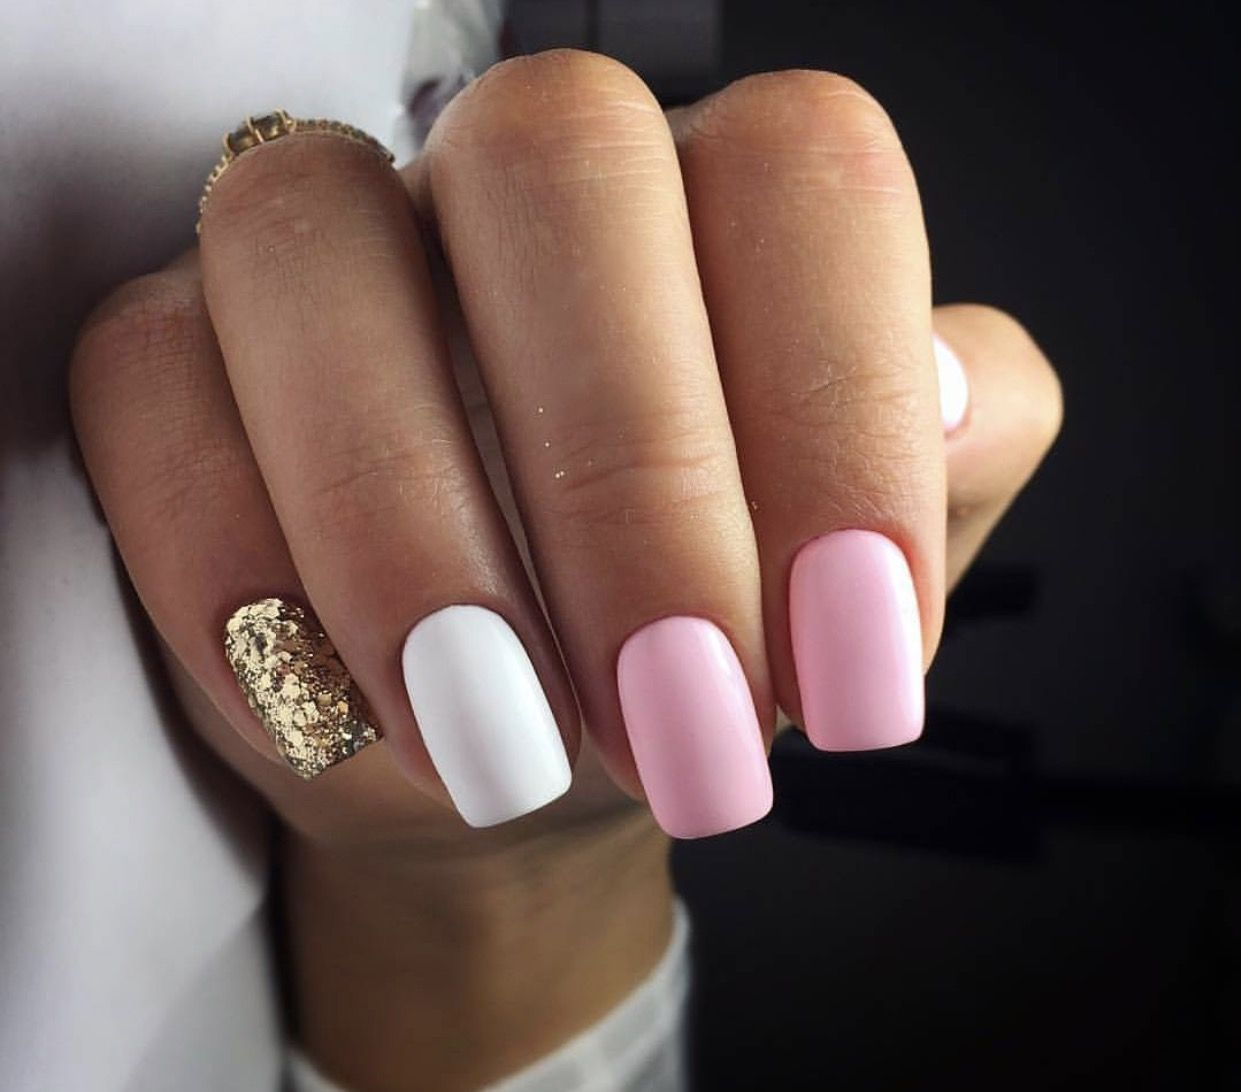 Pin by Brittany Rose on Nail Design Ideas   Pinterest   Manicure ...